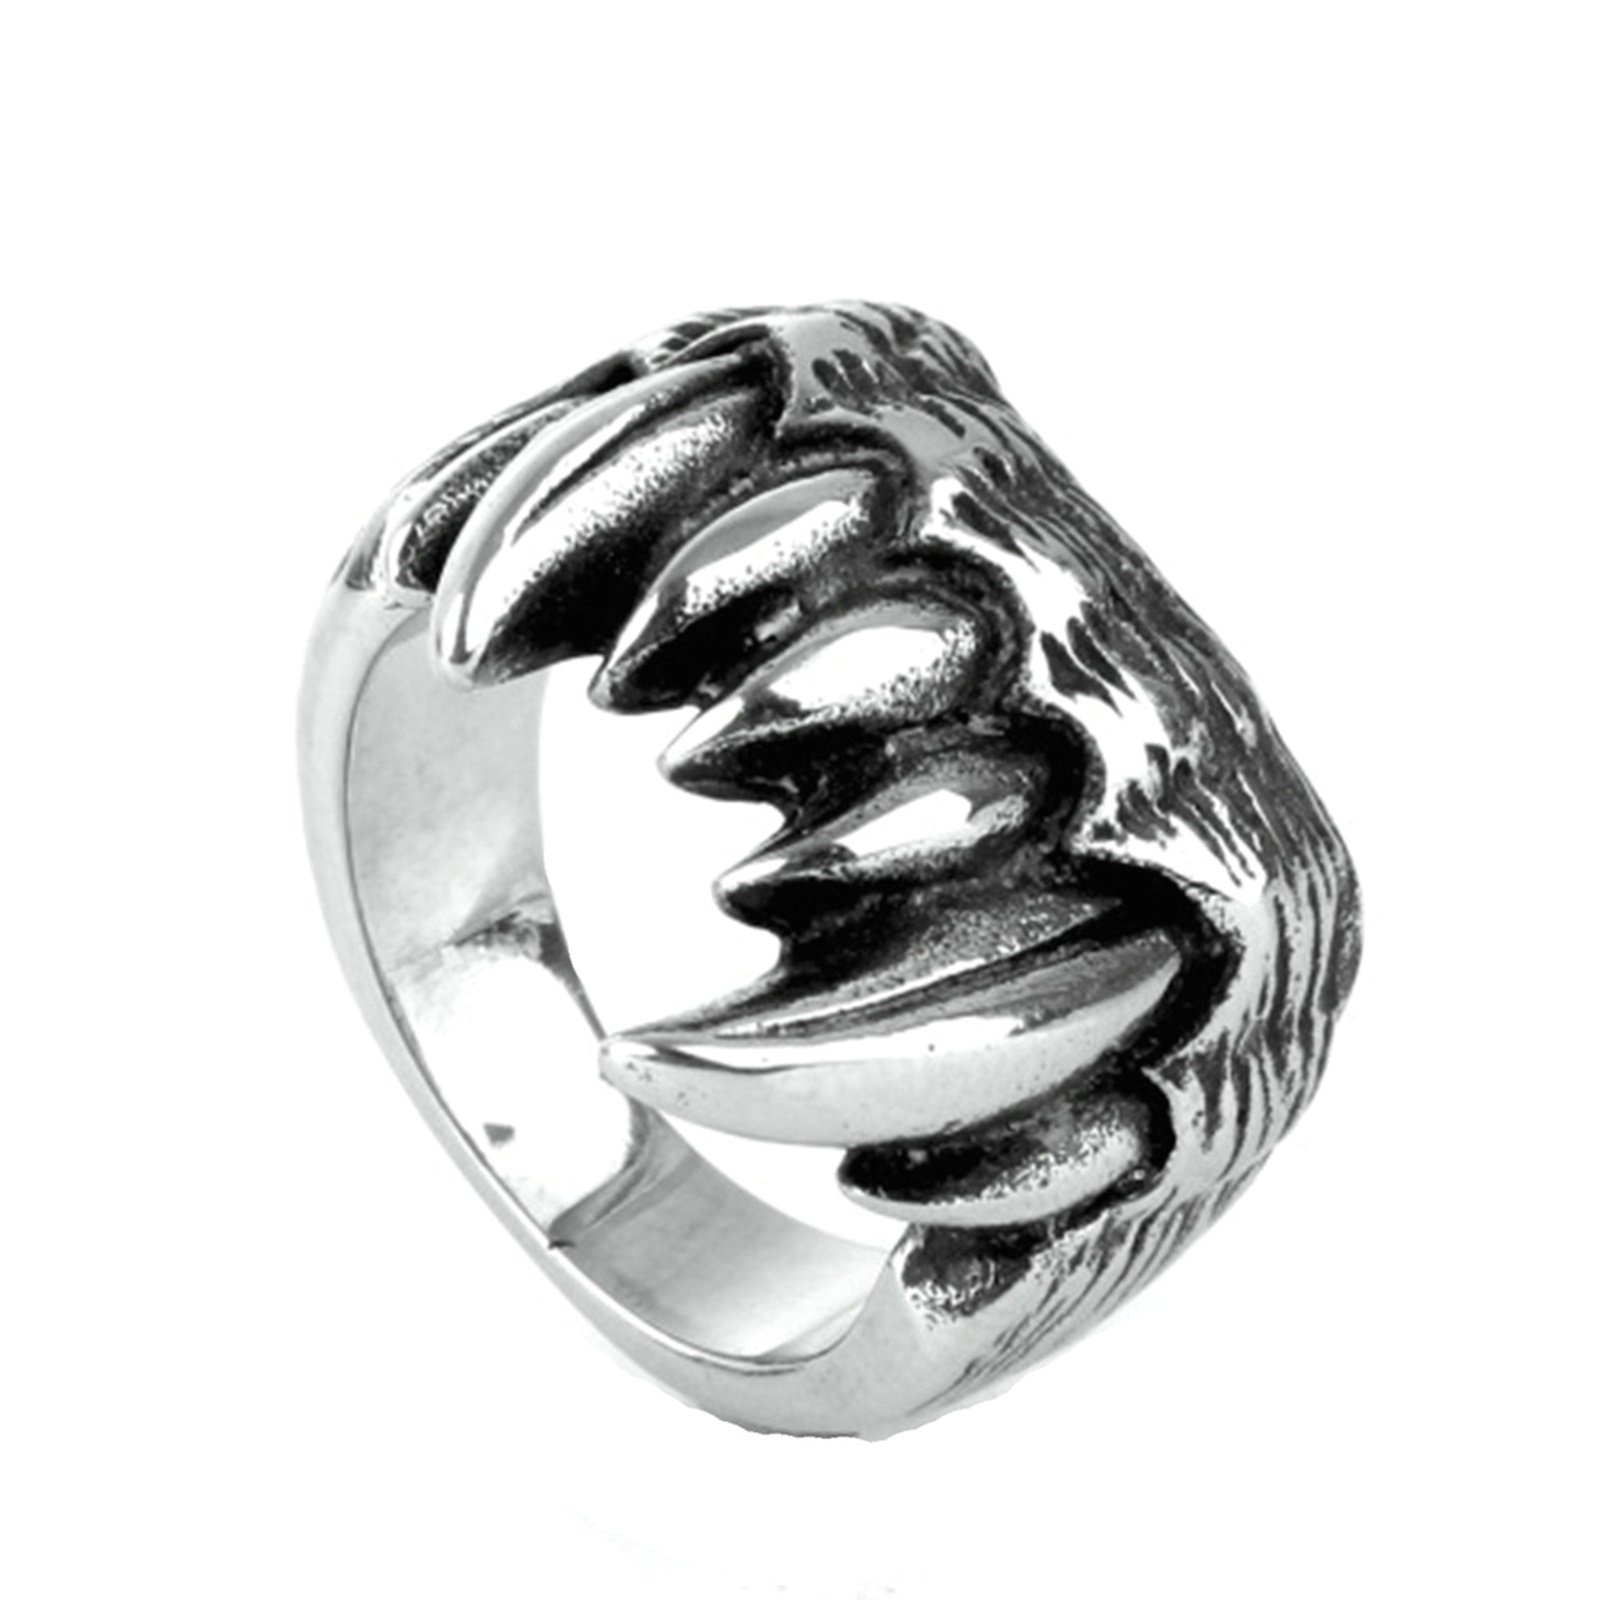 MoAndy Men Stainless Steel Vintage Retro Silver Dragon Claw Ring 6MM Size 7